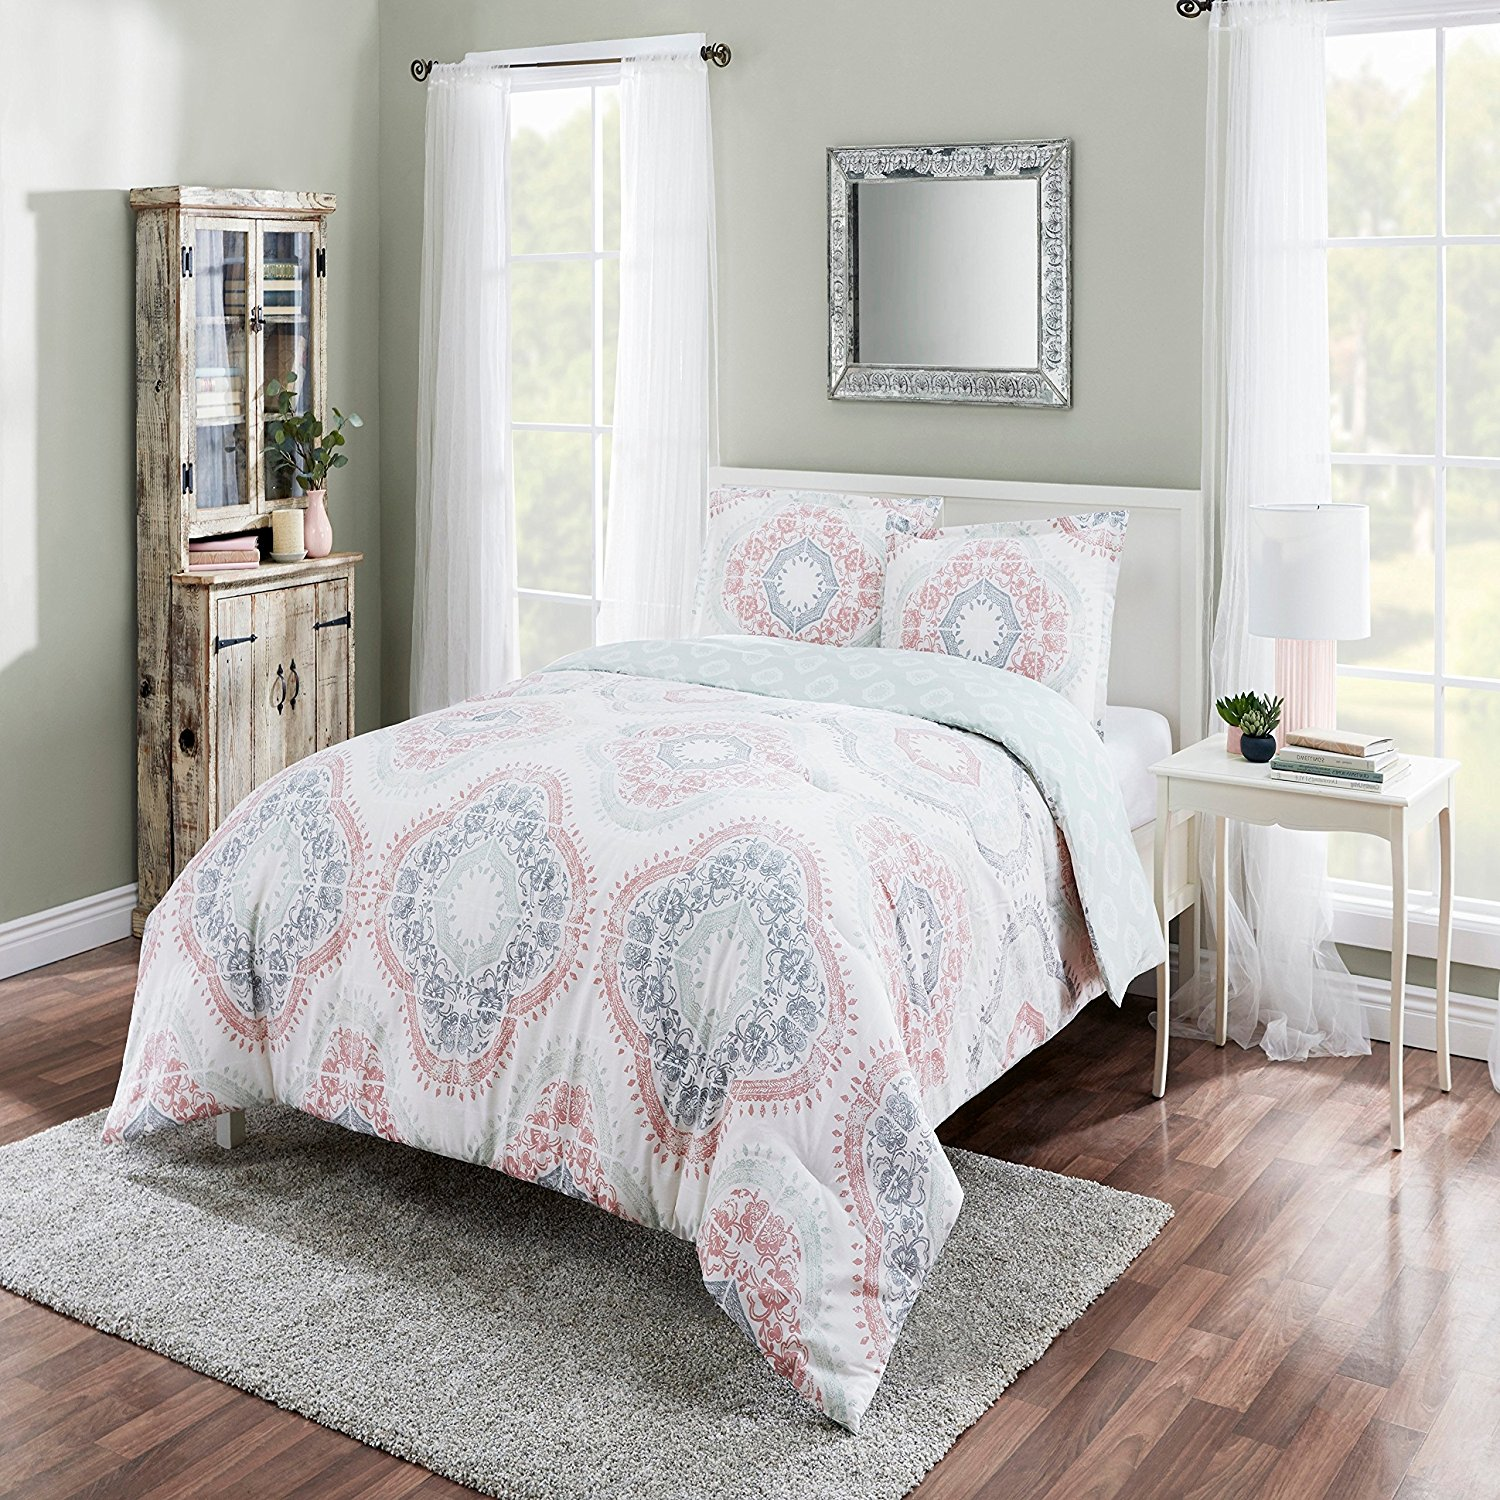 D.I.D. 3 Piece Girls Pink White Grey Geometric Medallion Themed Comforter Queen Set, All Over Multi Quatrefoil Hippy Boho Chic Bedding, Dusty Blue Intricate Bohemian Motif Hippie Pattern, Cotton